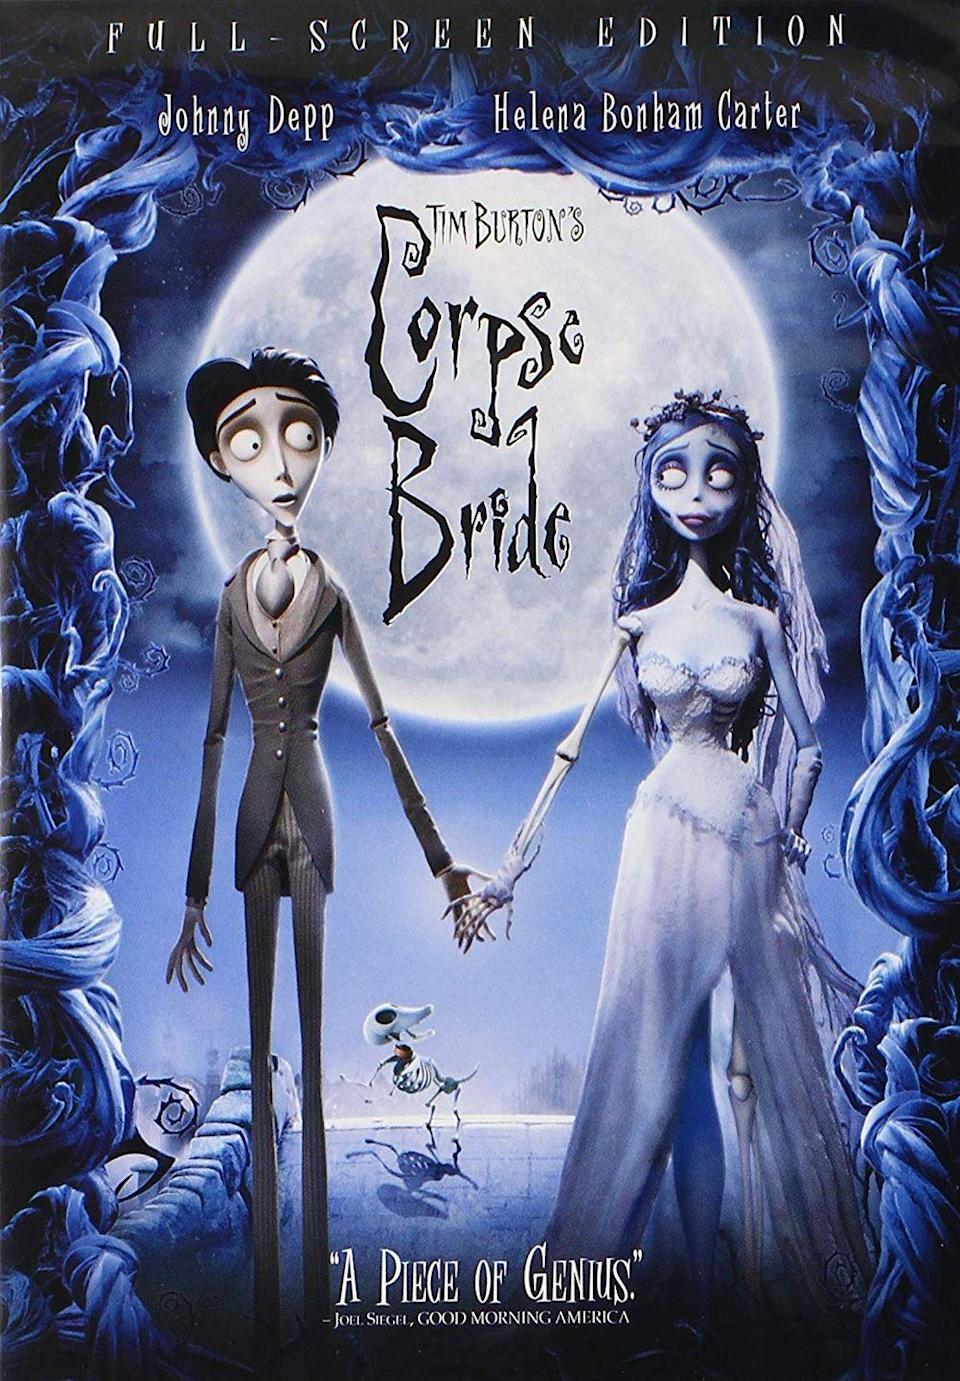 """<p>There are so many Tim Burton movies on this list because he is the king of great Halloween movies. This one is about Victor, who accidentally marries a corpse bride, forcing him to decide between staying married to her or leaving her for his former fiancé, Victoria. </p><p><a class=""""link rapid-noclick-resp"""" href=""""https://www.amazon.com/Burtons-Corpse-Bride-Johnny-Depp/dp/B0091XEGTI/?tag=syn-yahoo-20&ascsubtag=%5Bartid%7C10065.g.29354714%5Bsrc%7Cyahoo-us"""" rel=""""nofollow noopener"""" target=""""_blank"""" data-ylk=""""slk:Watch Now"""">Watch Now</a></p>"""